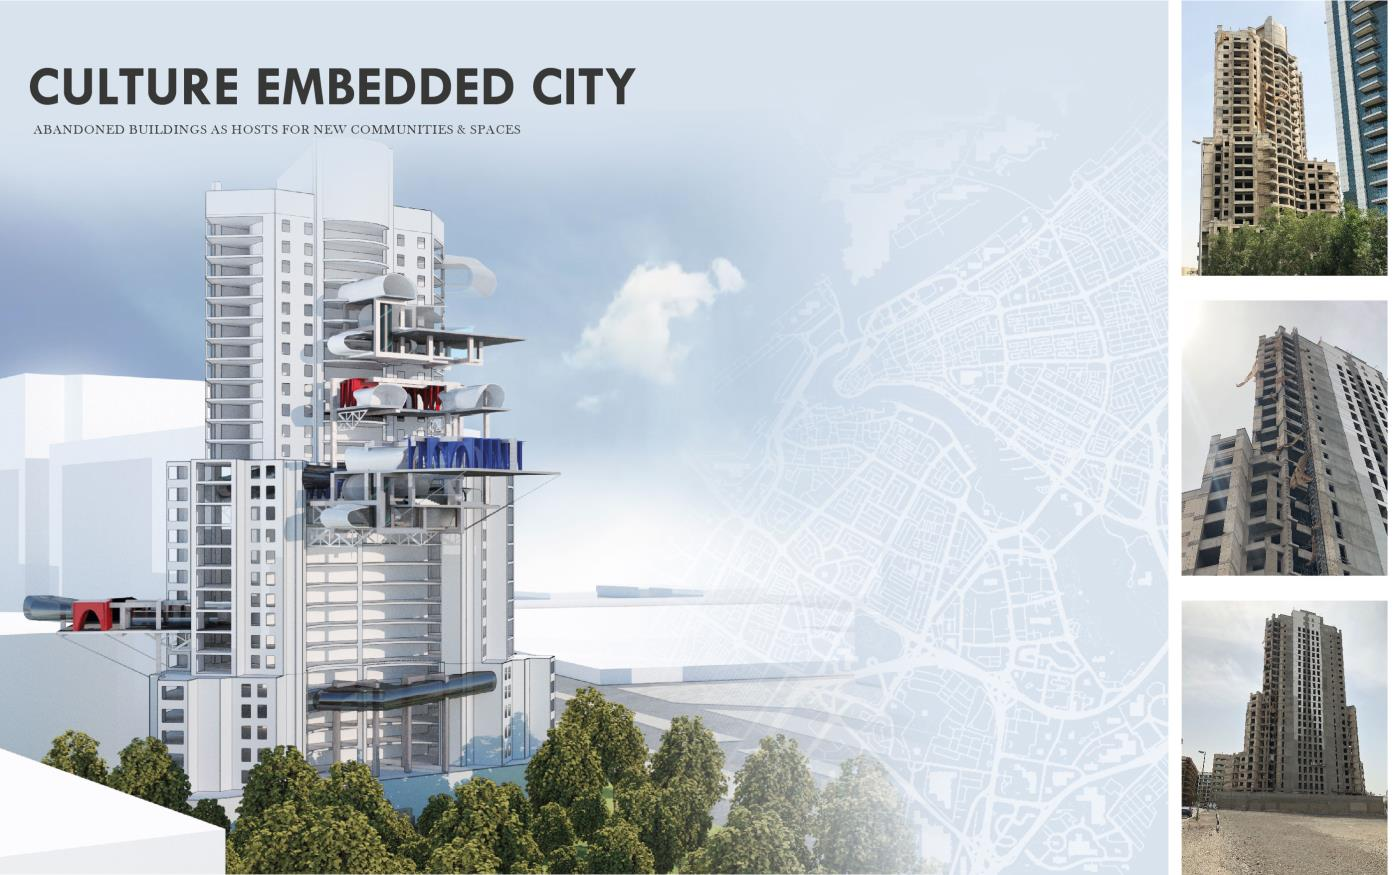 Culture Embedded City